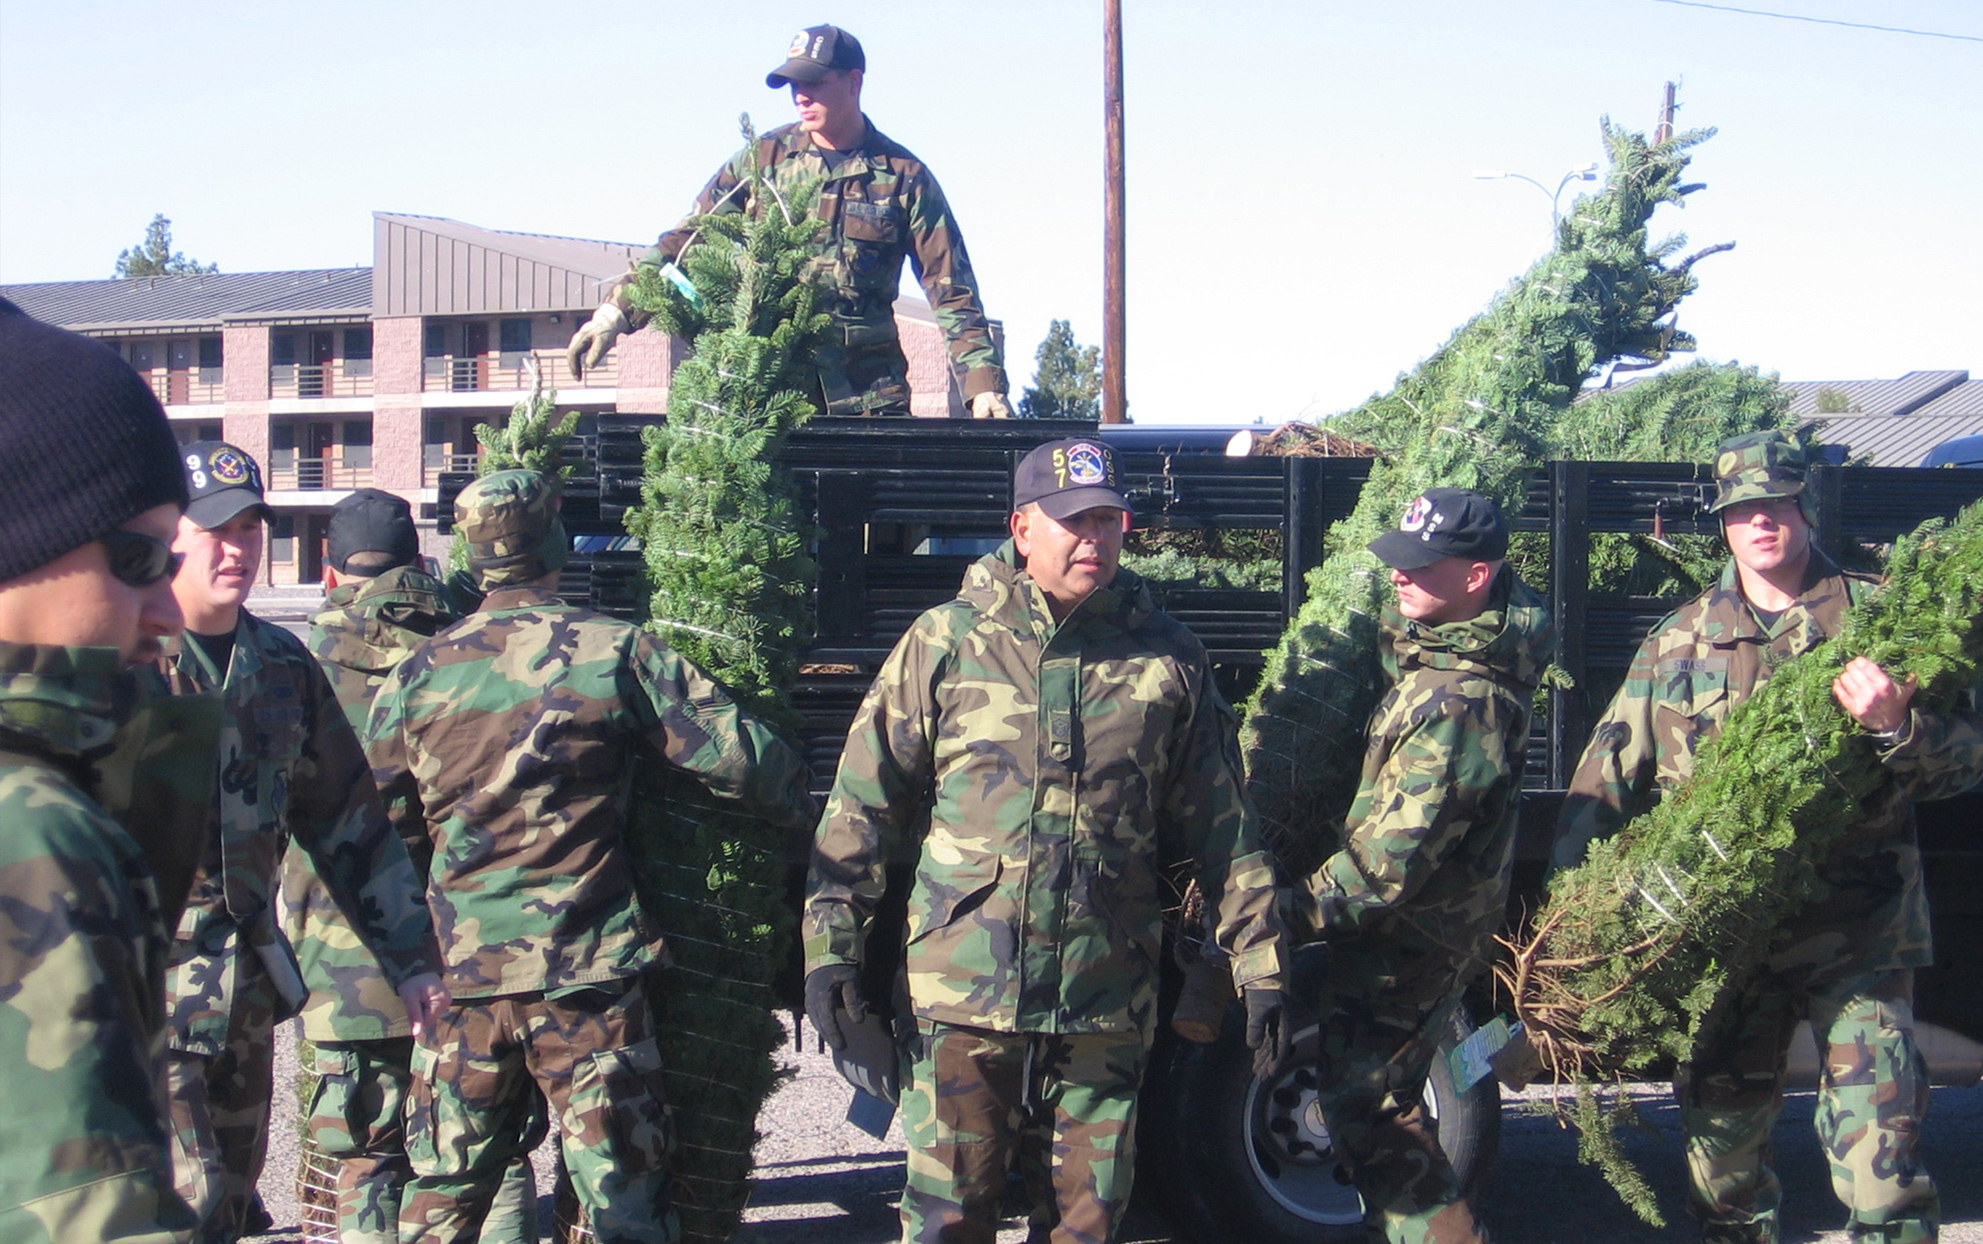 Military soldiers distributing Christmas trees